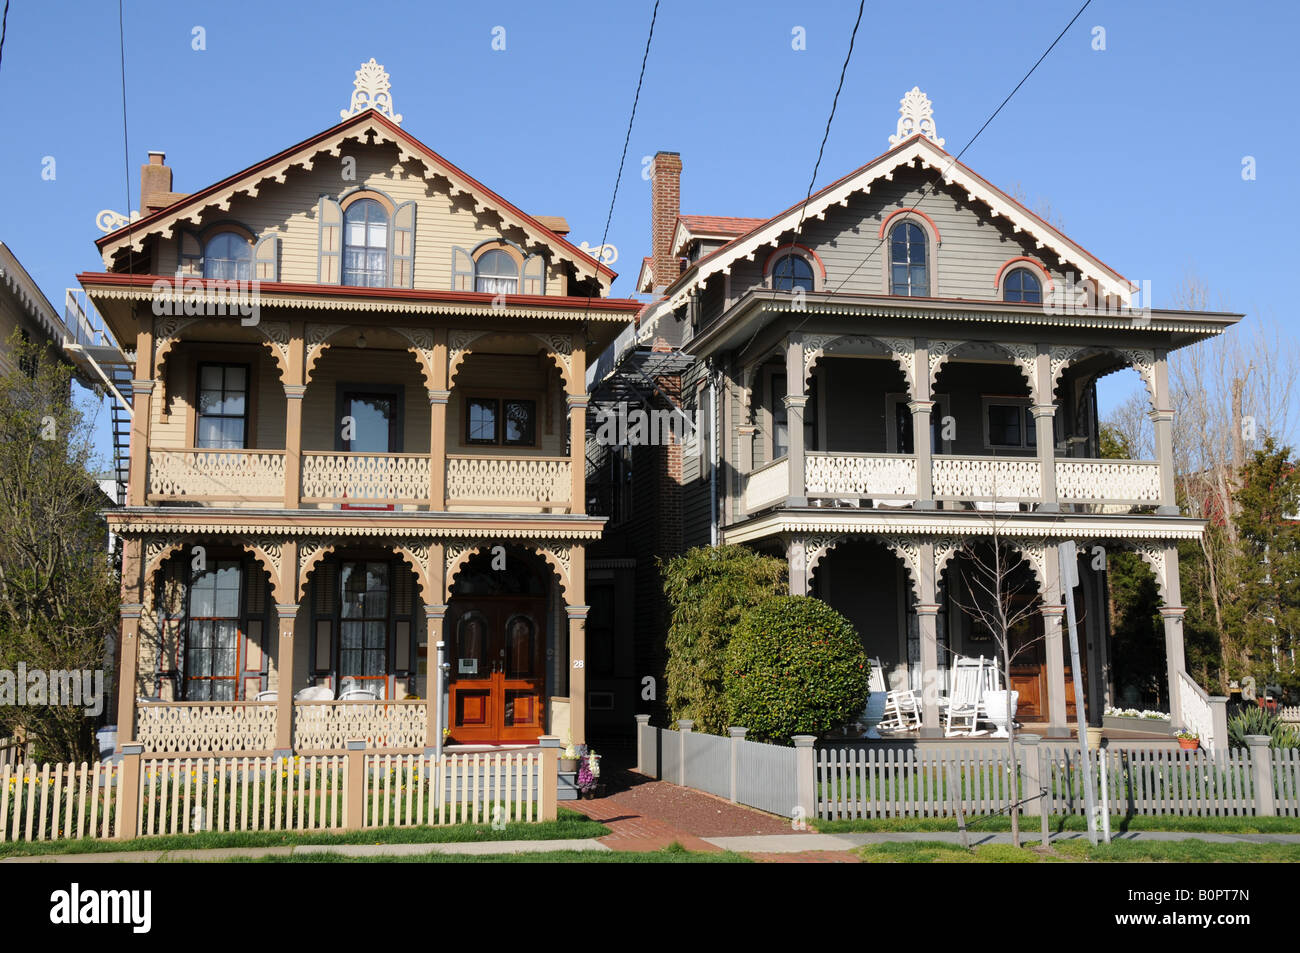 Victorian Houses, Cape May, New Jersey, USA - Stock Image